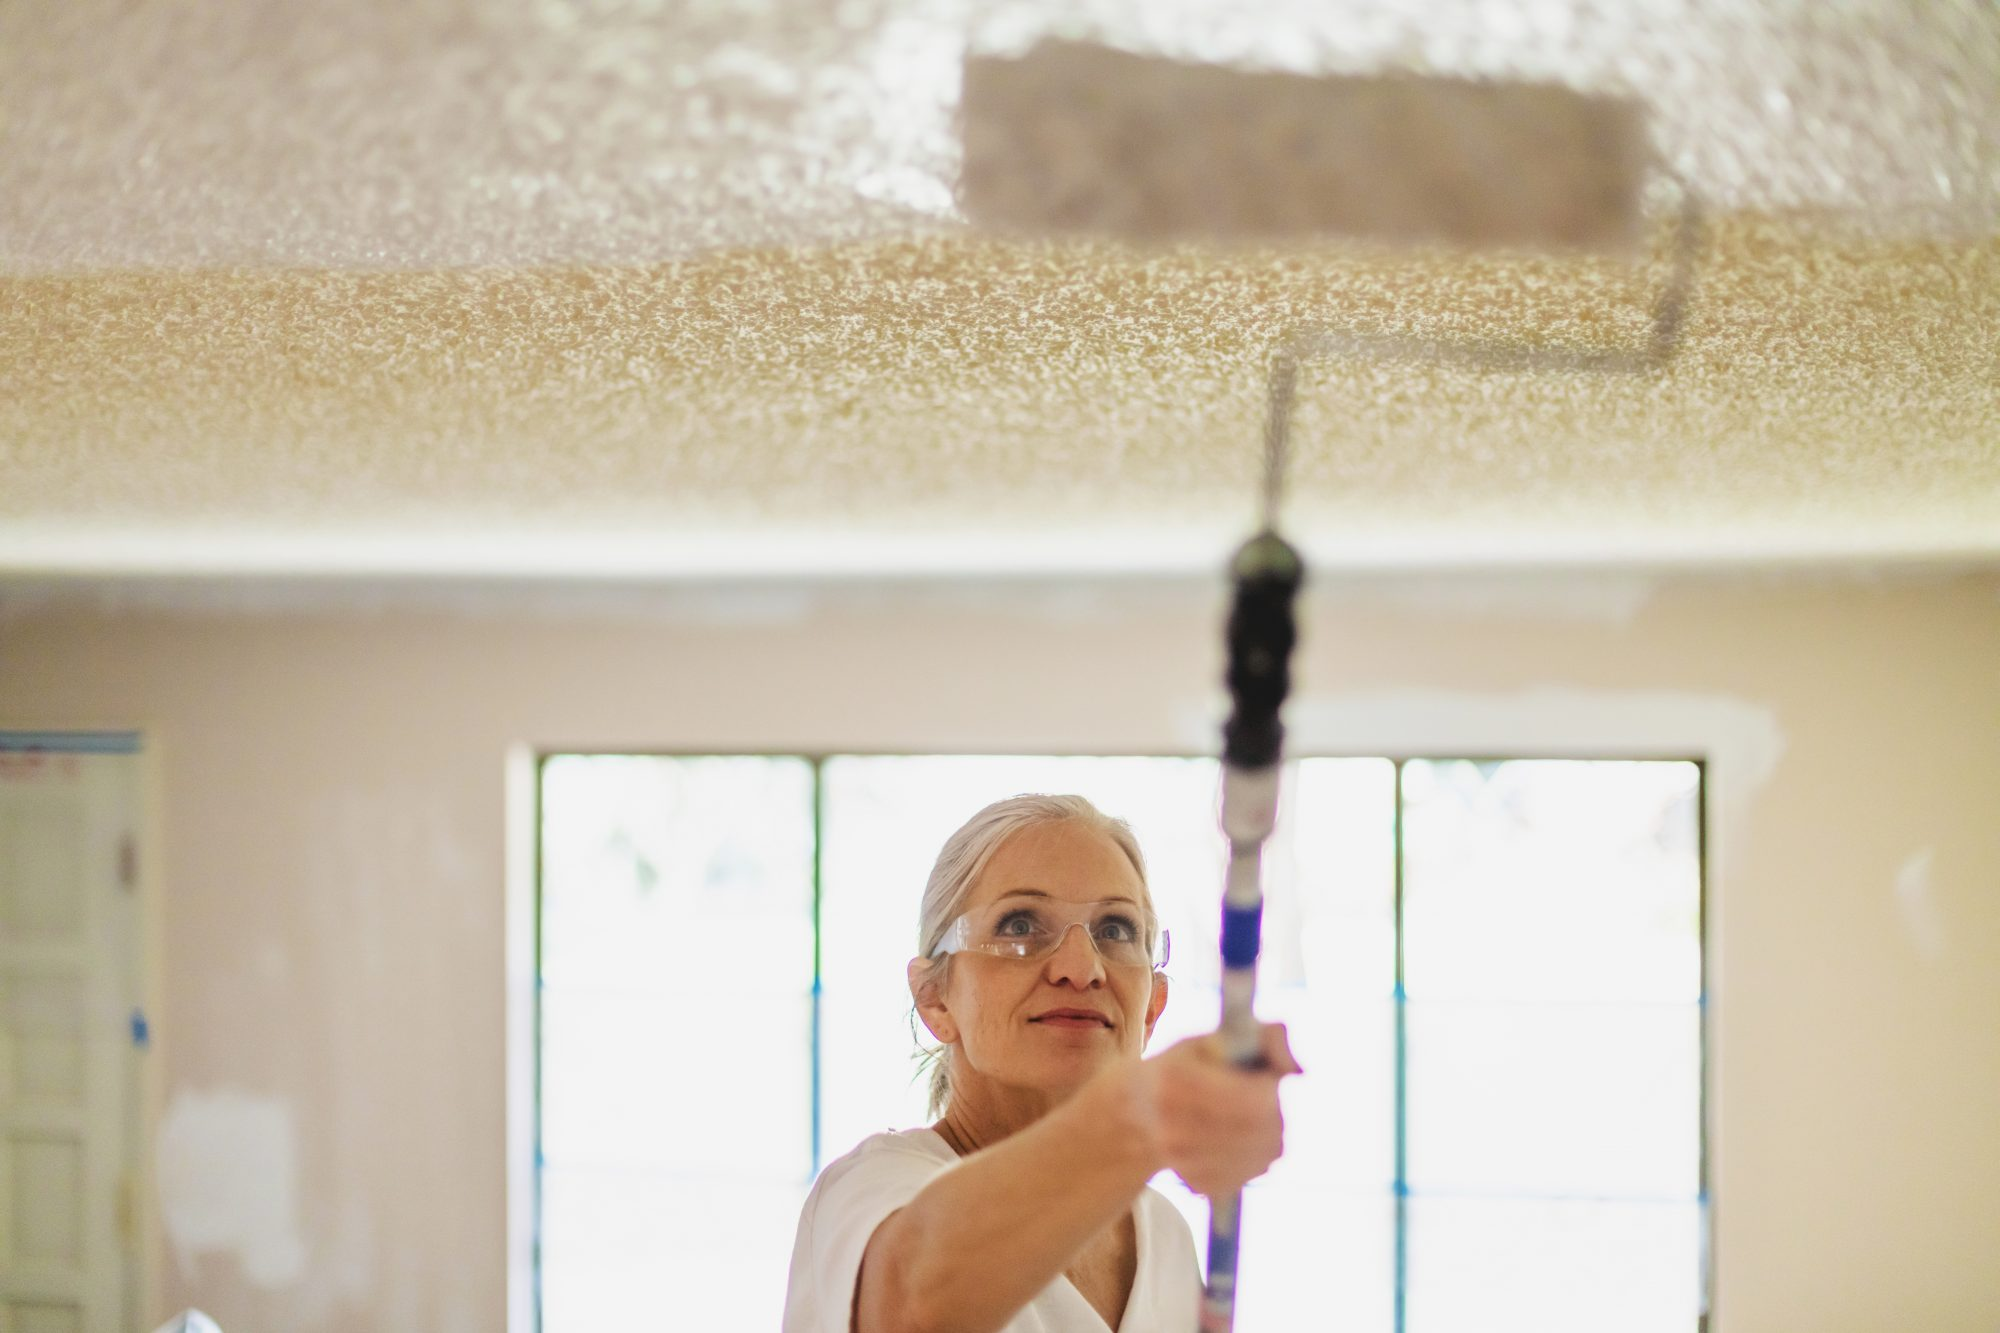 woman painting ceiling with roller brush